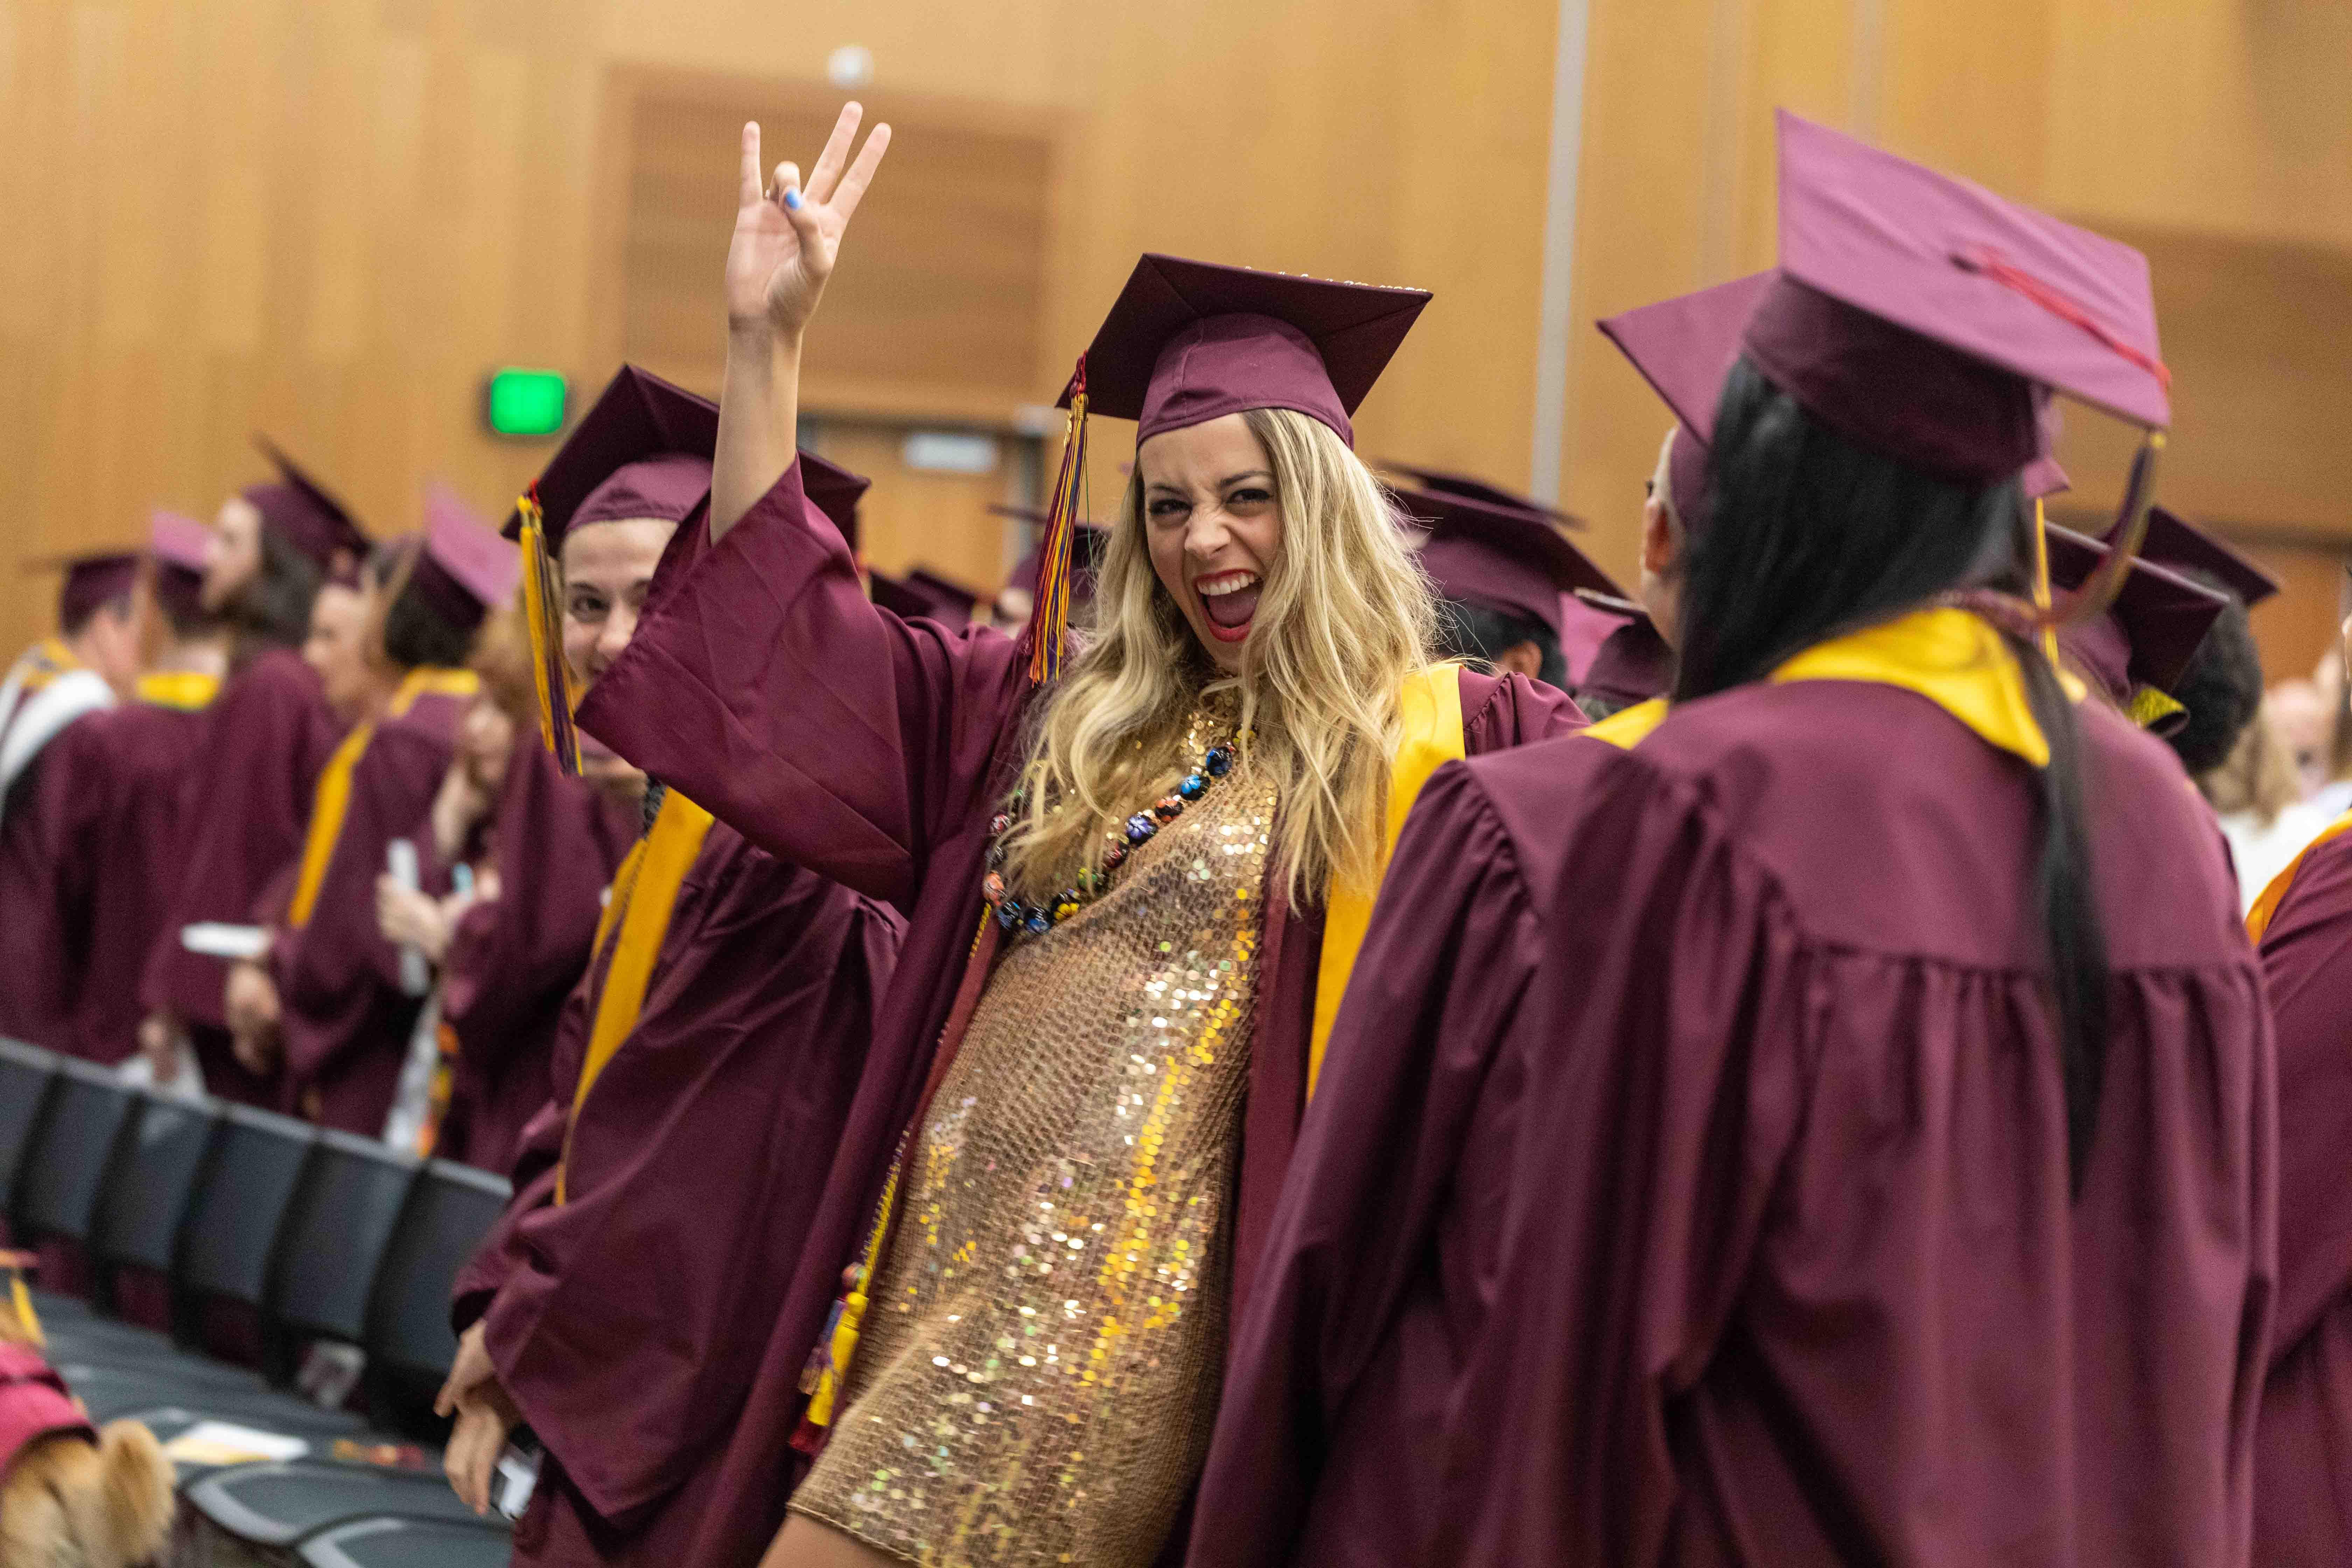 ASU student in a gold sequined dress gives a forks up symbol at the Rainbow LGBTQ graduation convocation at ASU's Tempe campus in the Student Pavilion